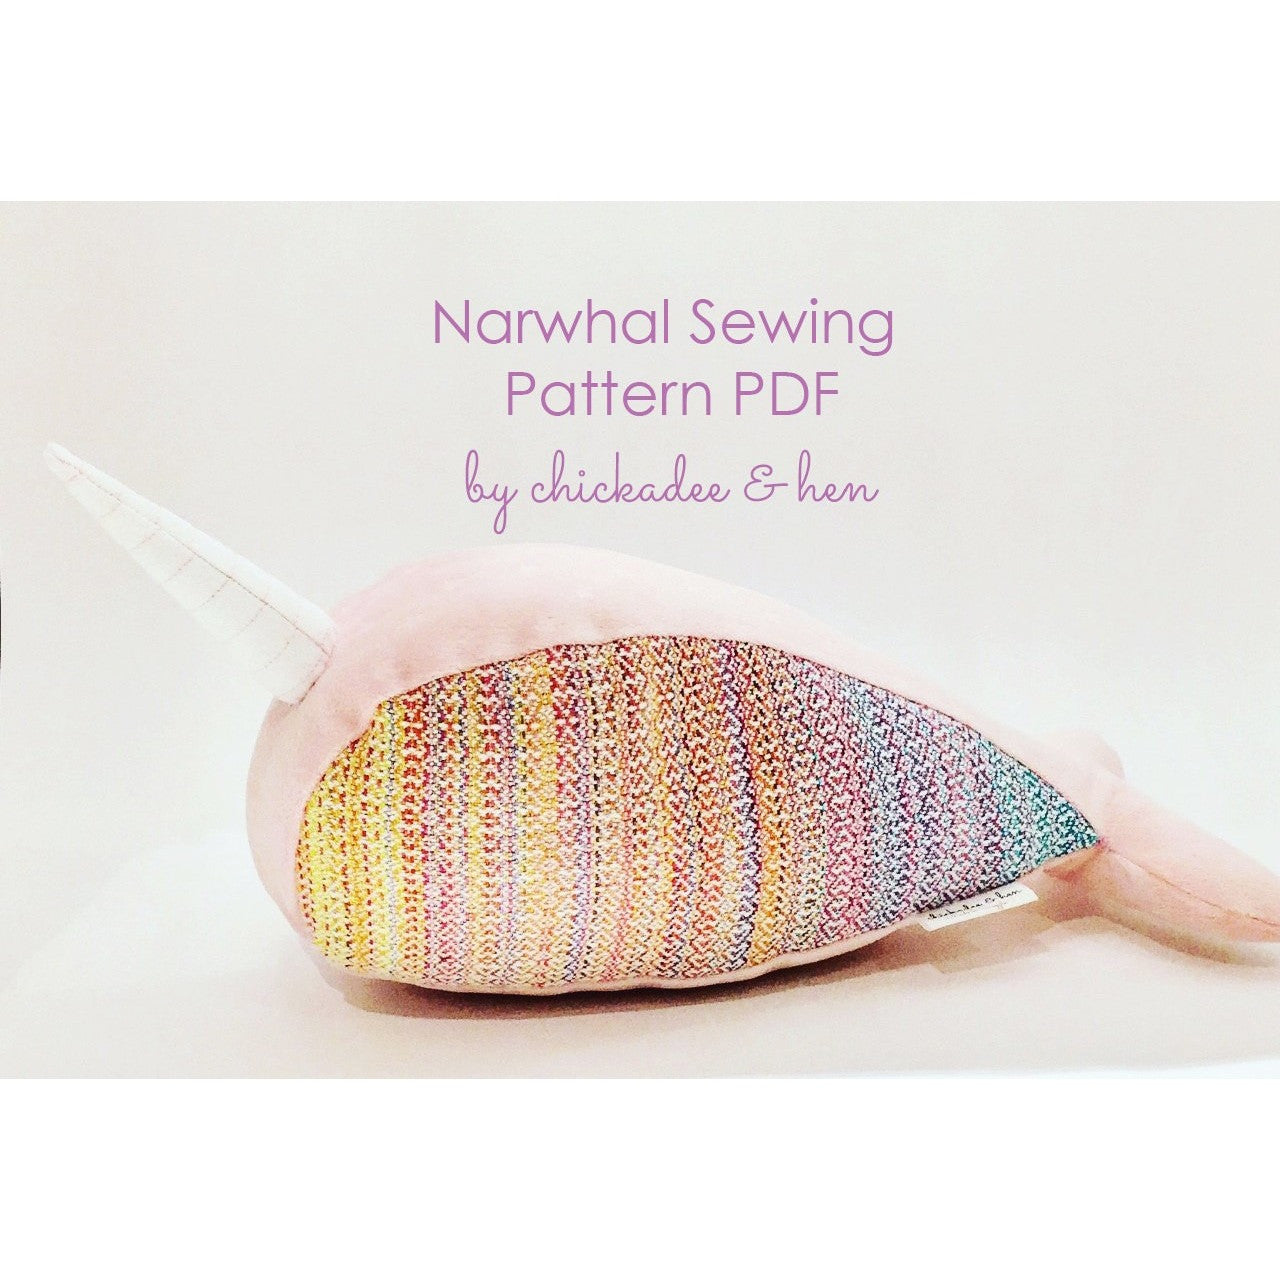 Narwhal Sewing Pattern PDF, easy sewing instructions for beginner ...